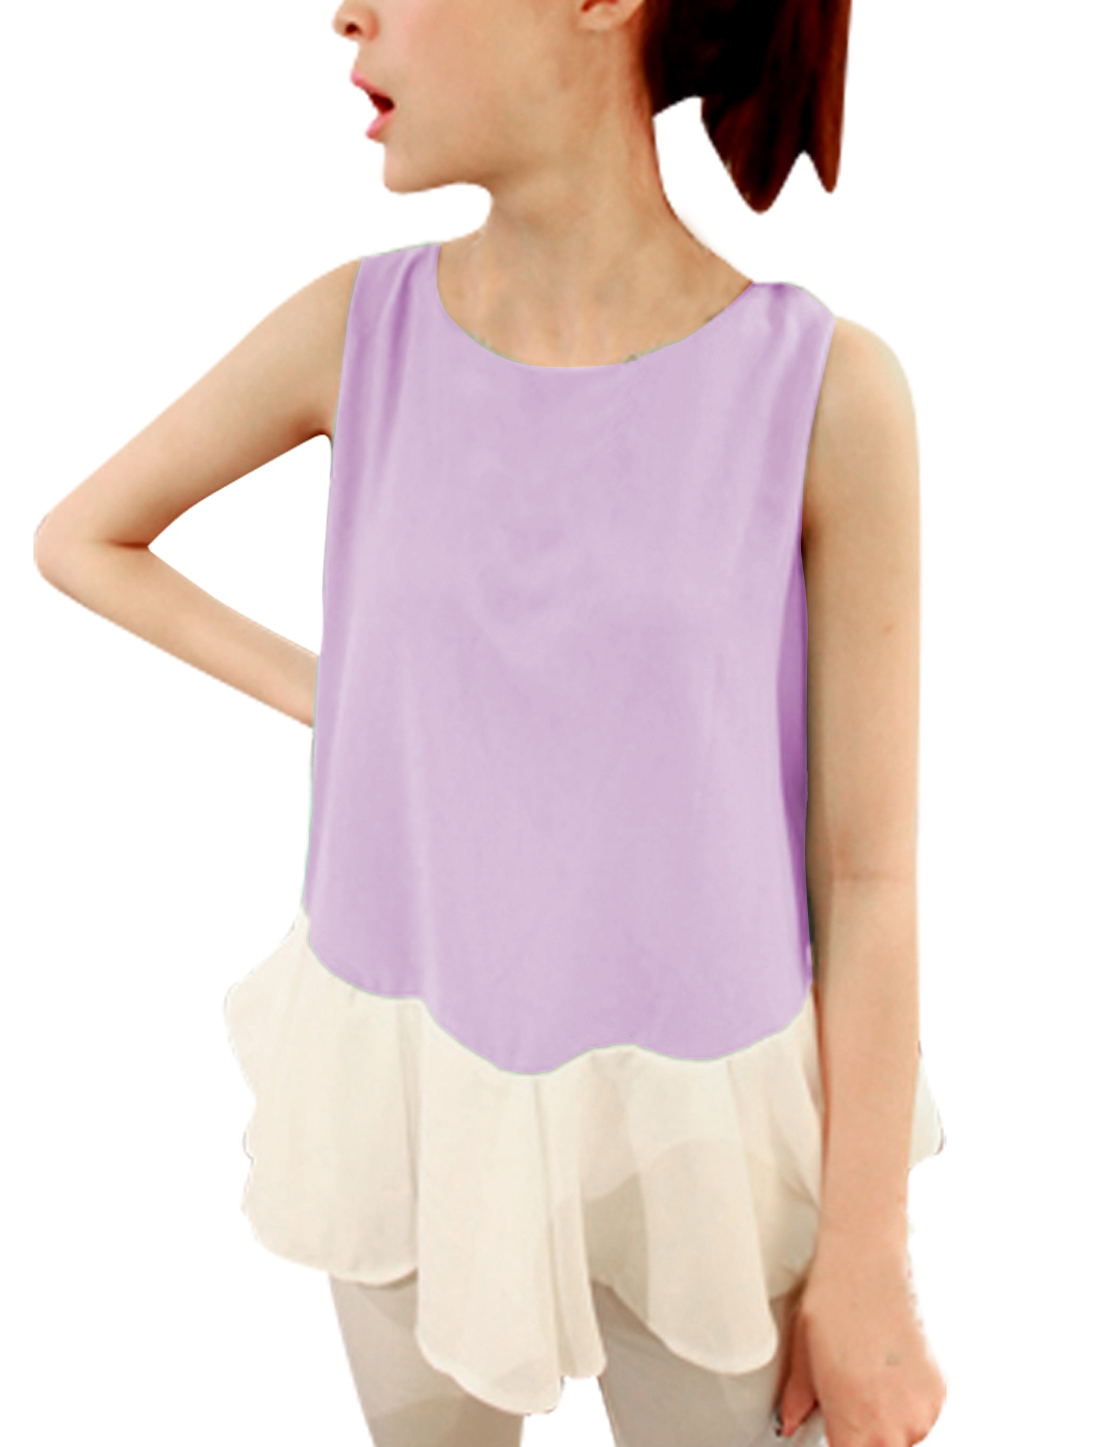 Ladies Round Neck Color Block Tunic Top Lilac White XS